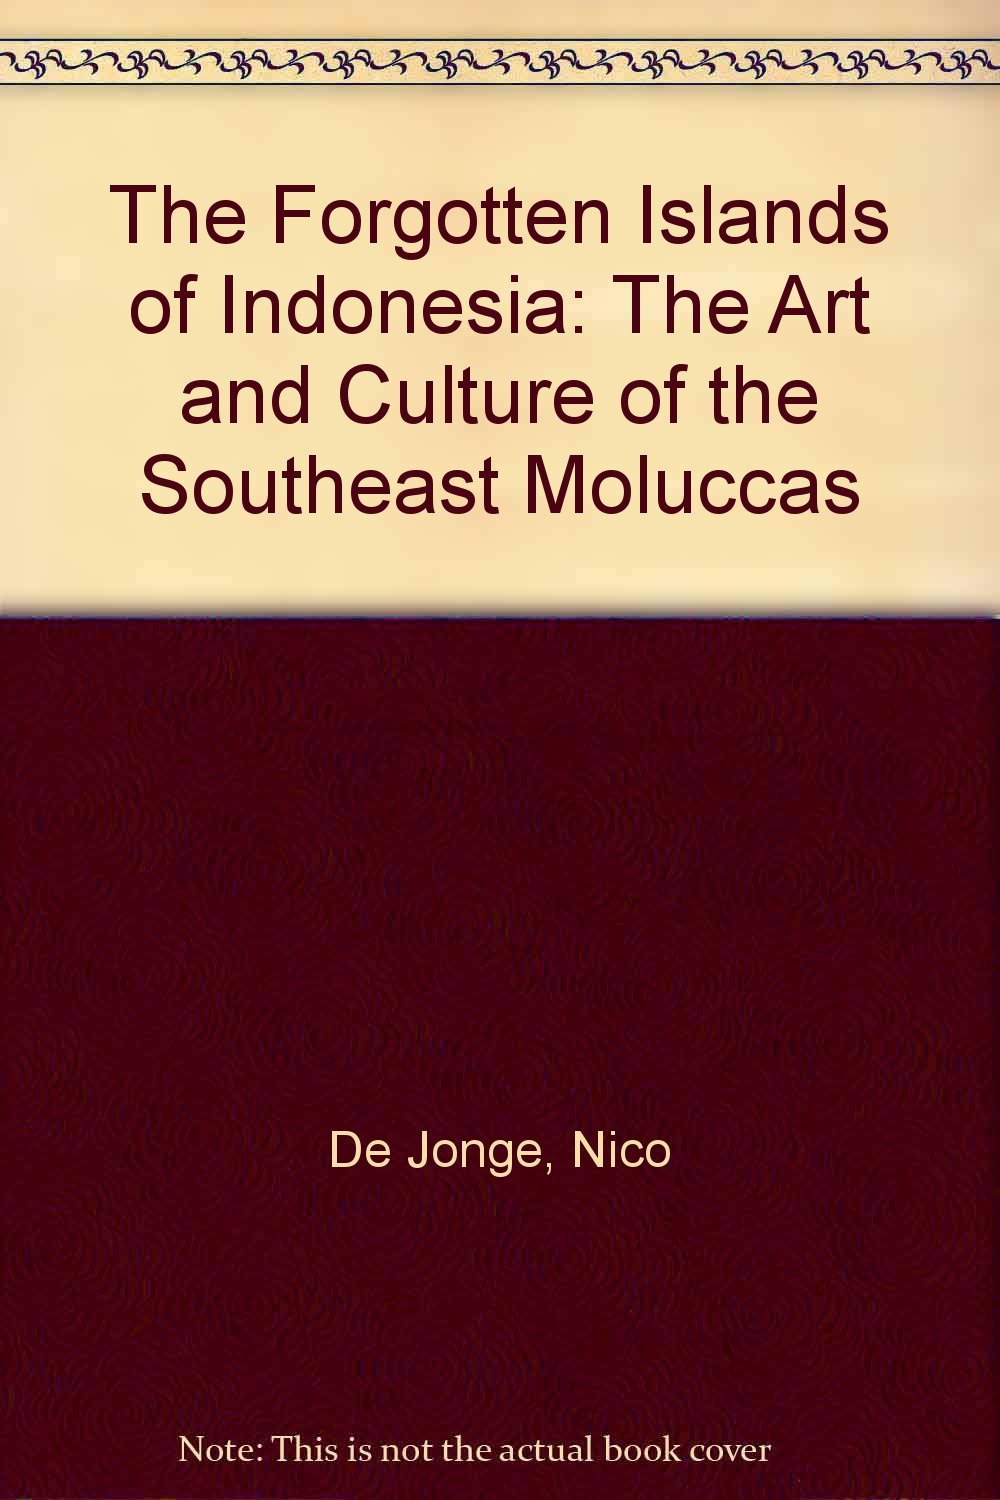 The Forgotten Islands of Indonesia: The Art & Culture of the Southeast Moluccas